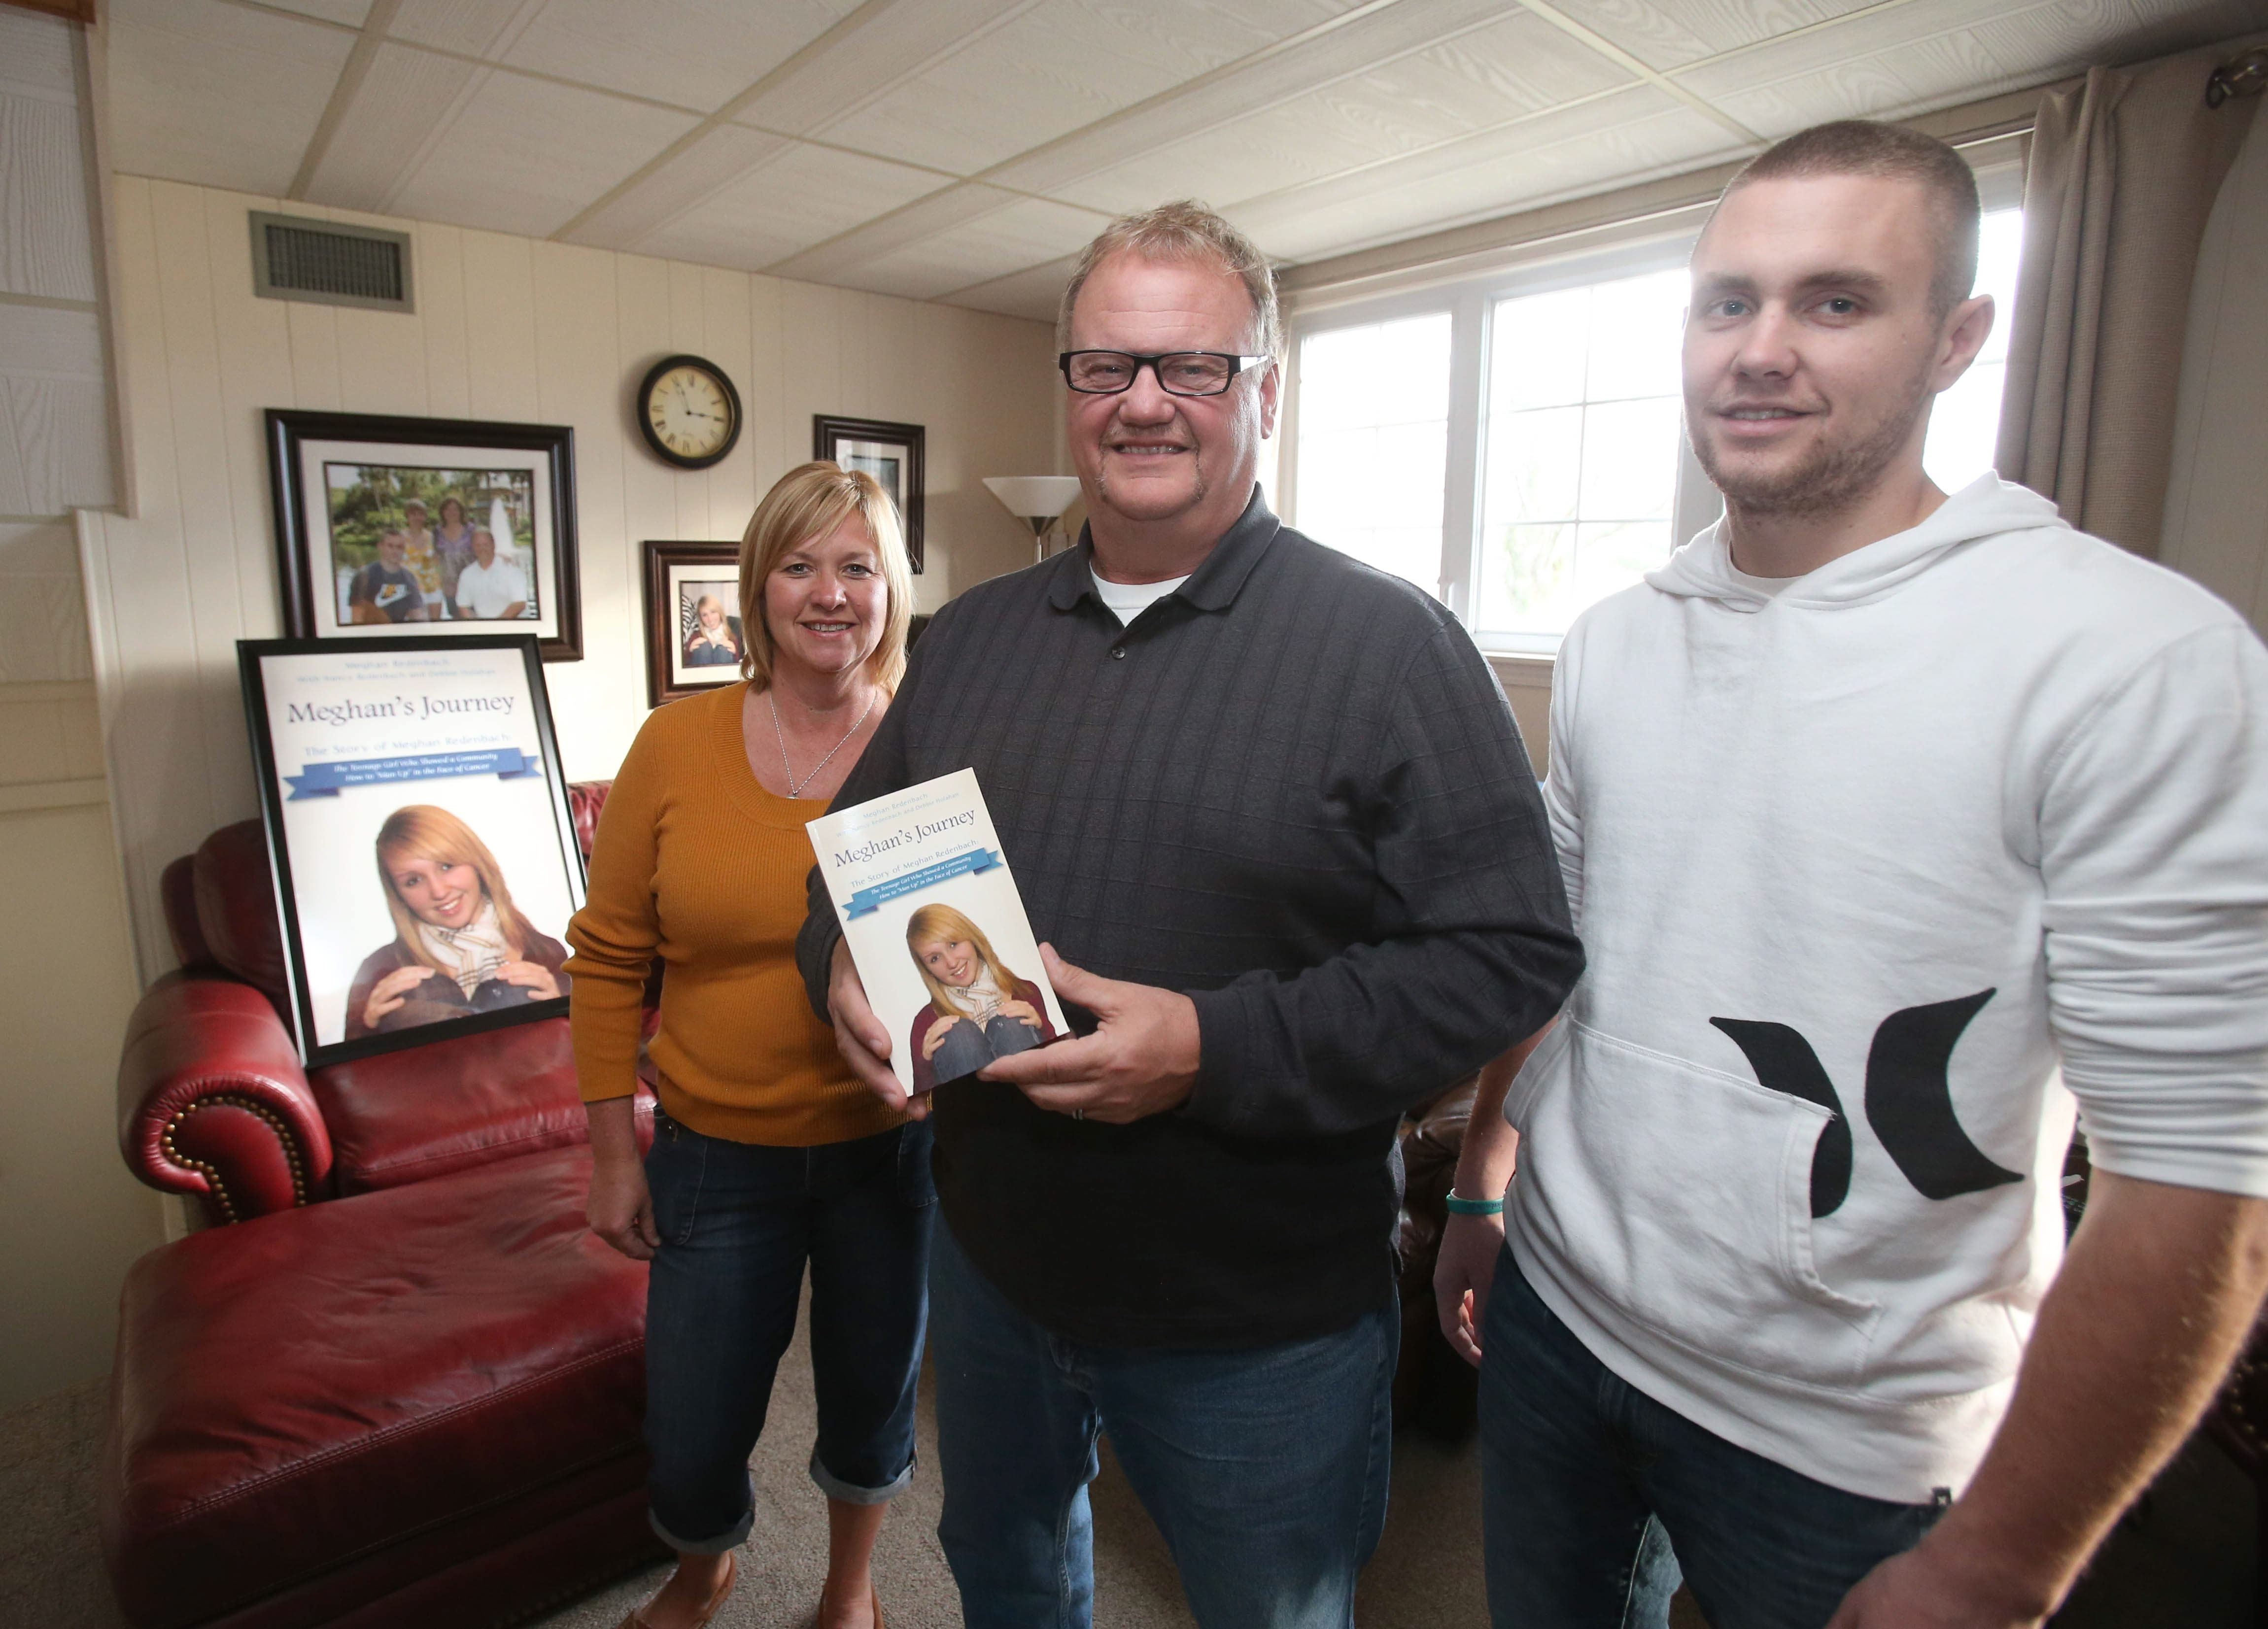 """Meghan Redenbach's father, Michael, joined by wife Nancy and son Nick, 23, shows a copy of new book """"Meghan's Journey,"""" the story of """"The Teenage Girl Who Showed a Community How to 'Man Up' in the Face of Cancer."""" Meghan, 15, died in 2010"""